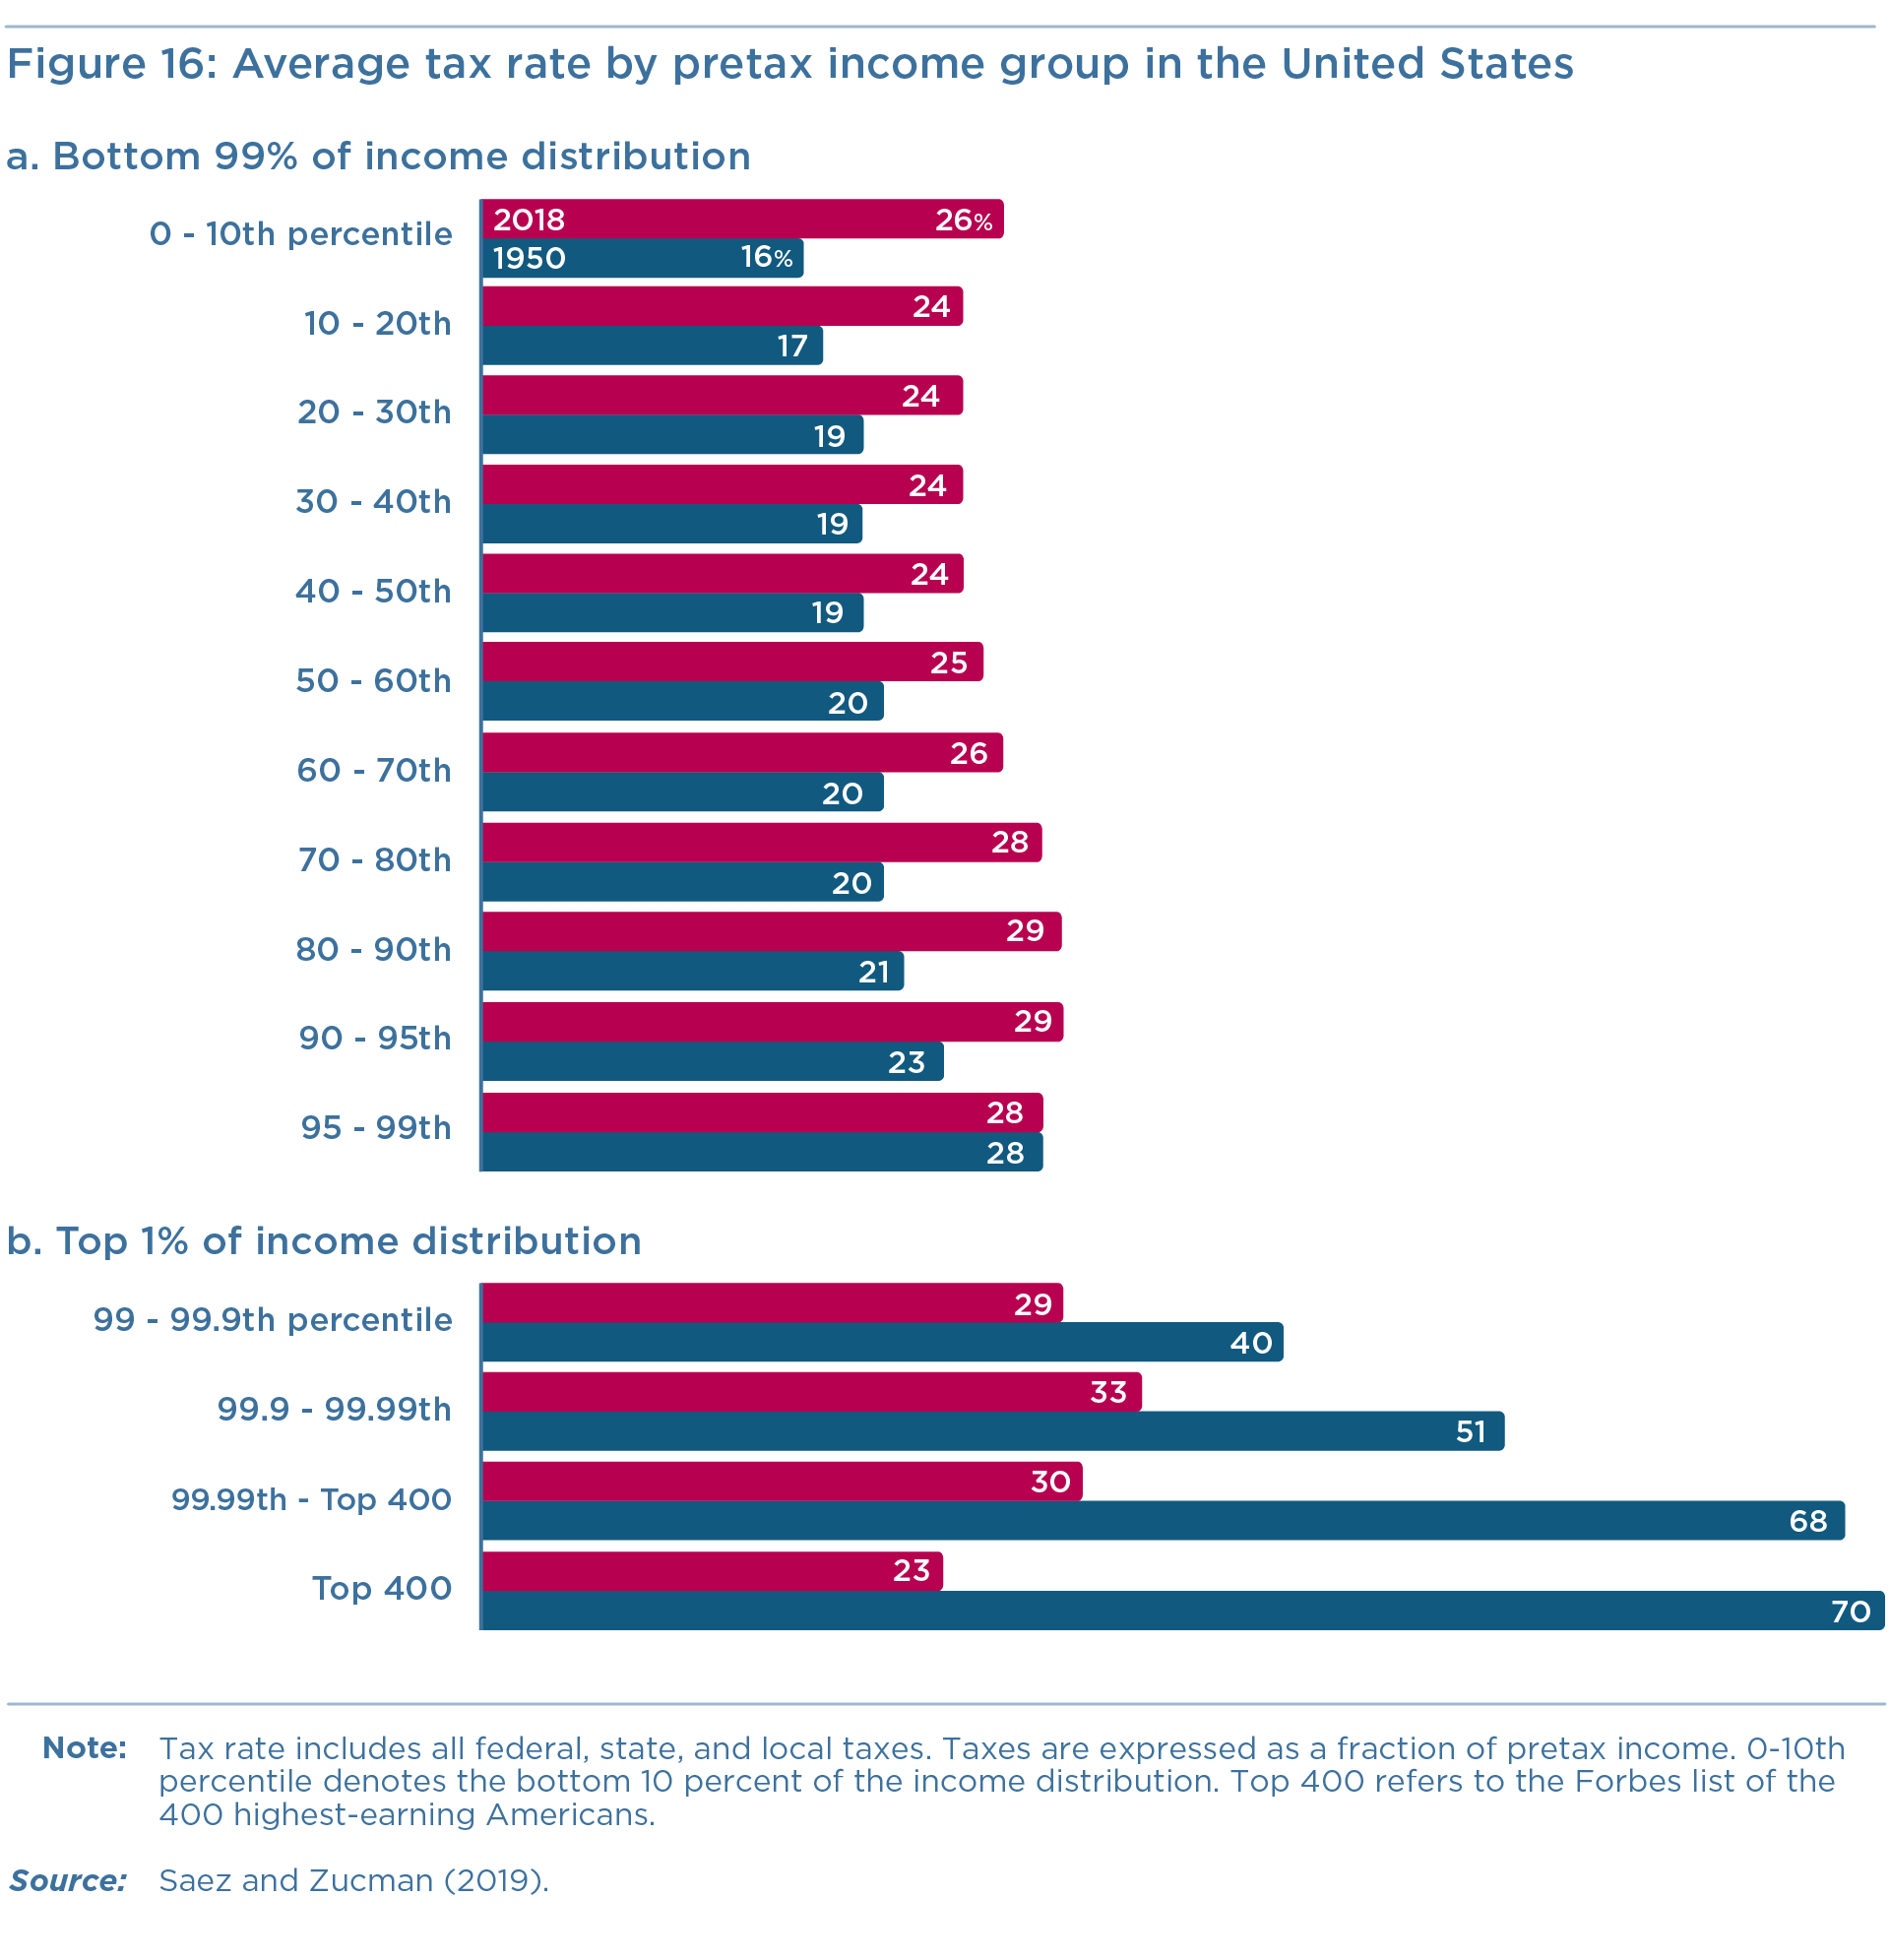 Figure 16: Average tax rate by pretax income group in the United States